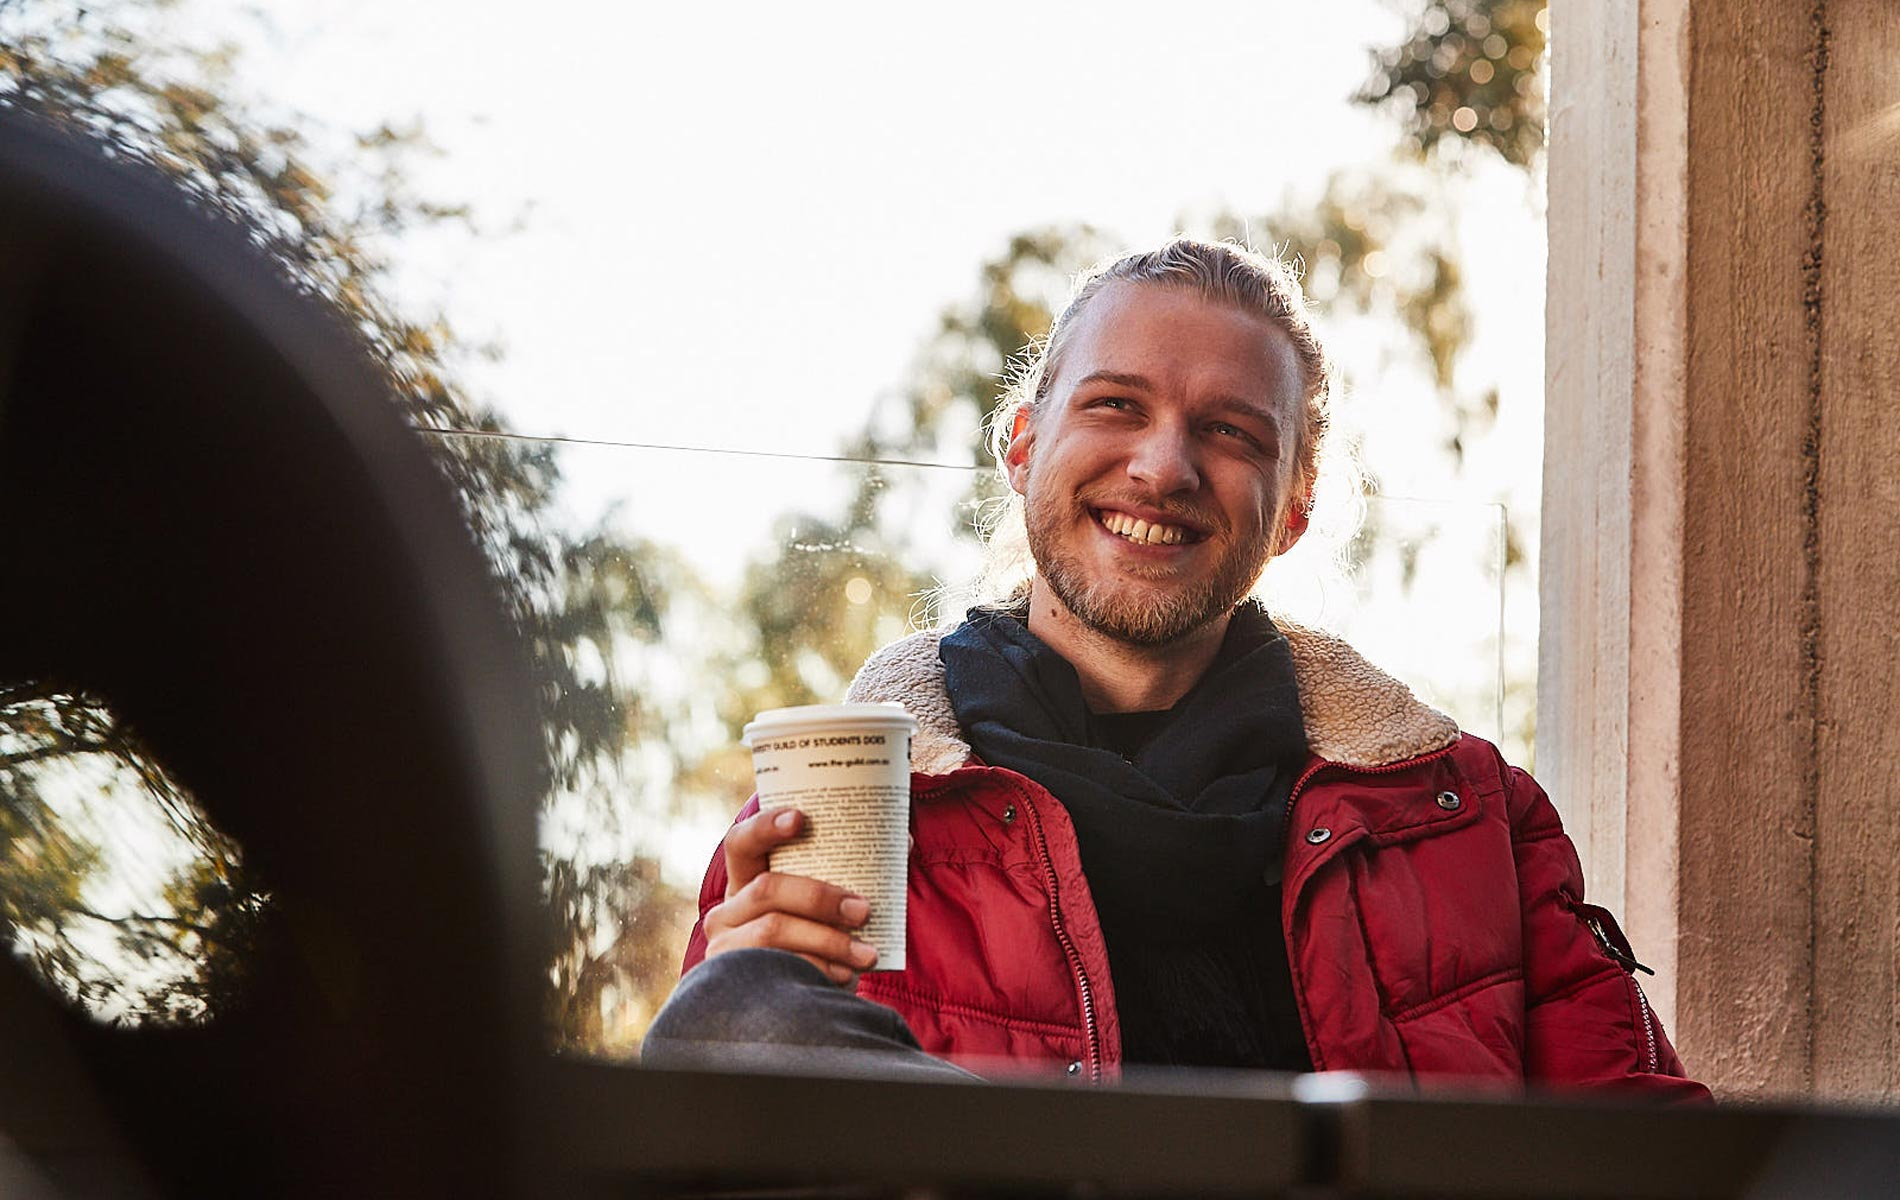 Murdoch student James Norton having a coffee while smiling on campus